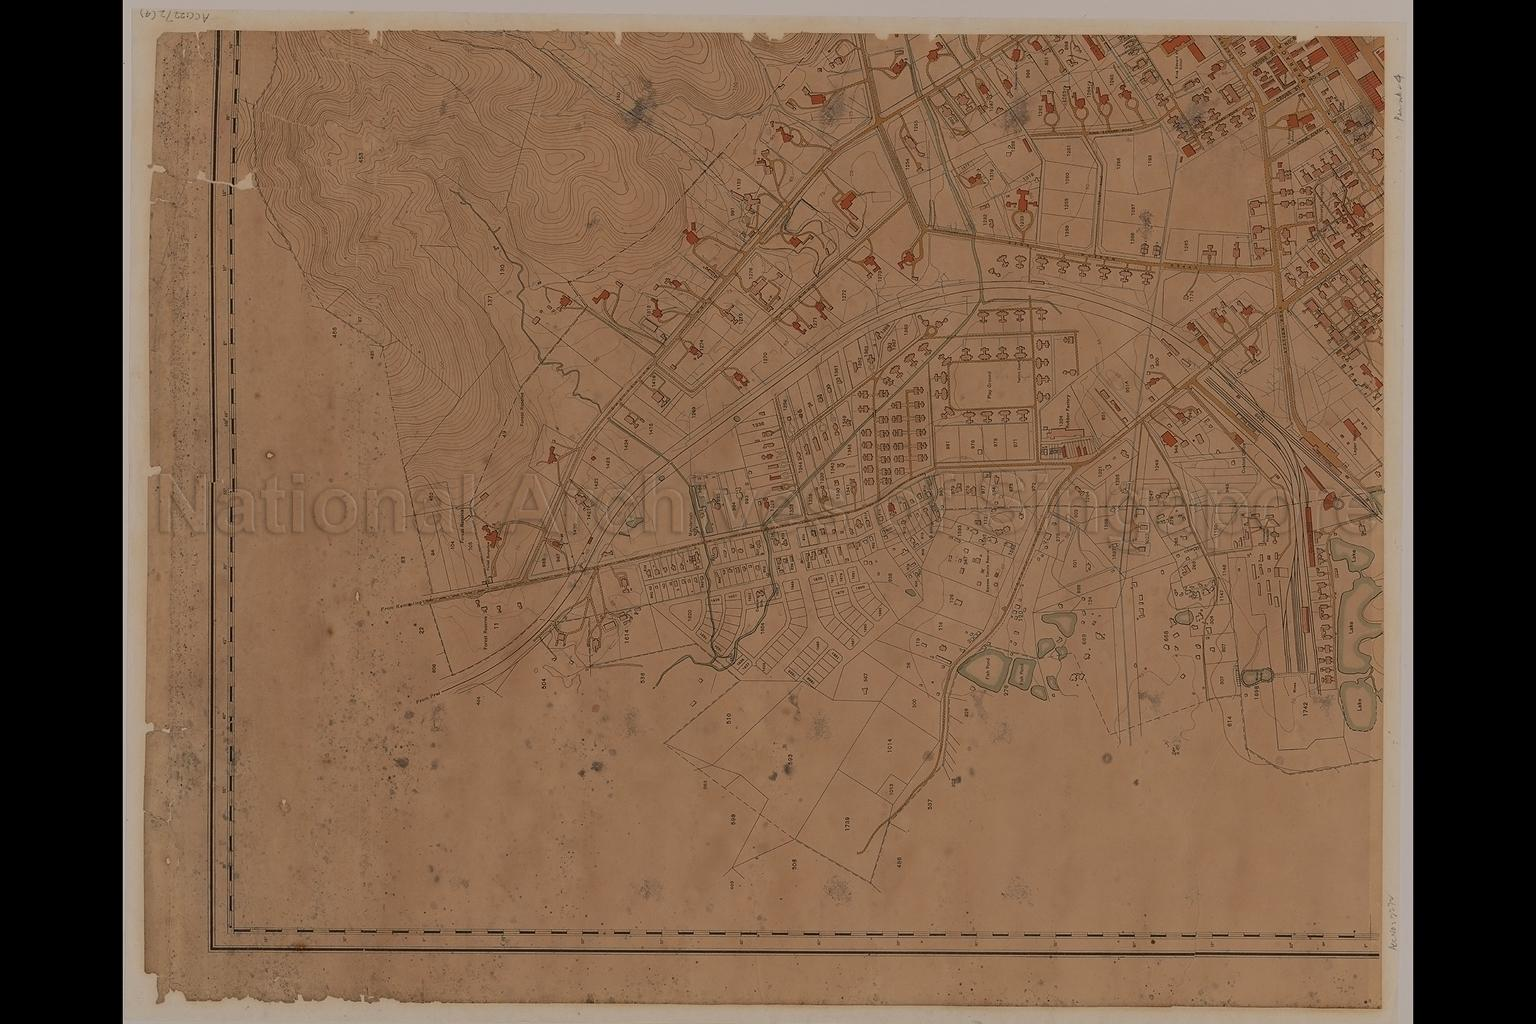 Town of Taiping, Perak, Federated Malay States,1928